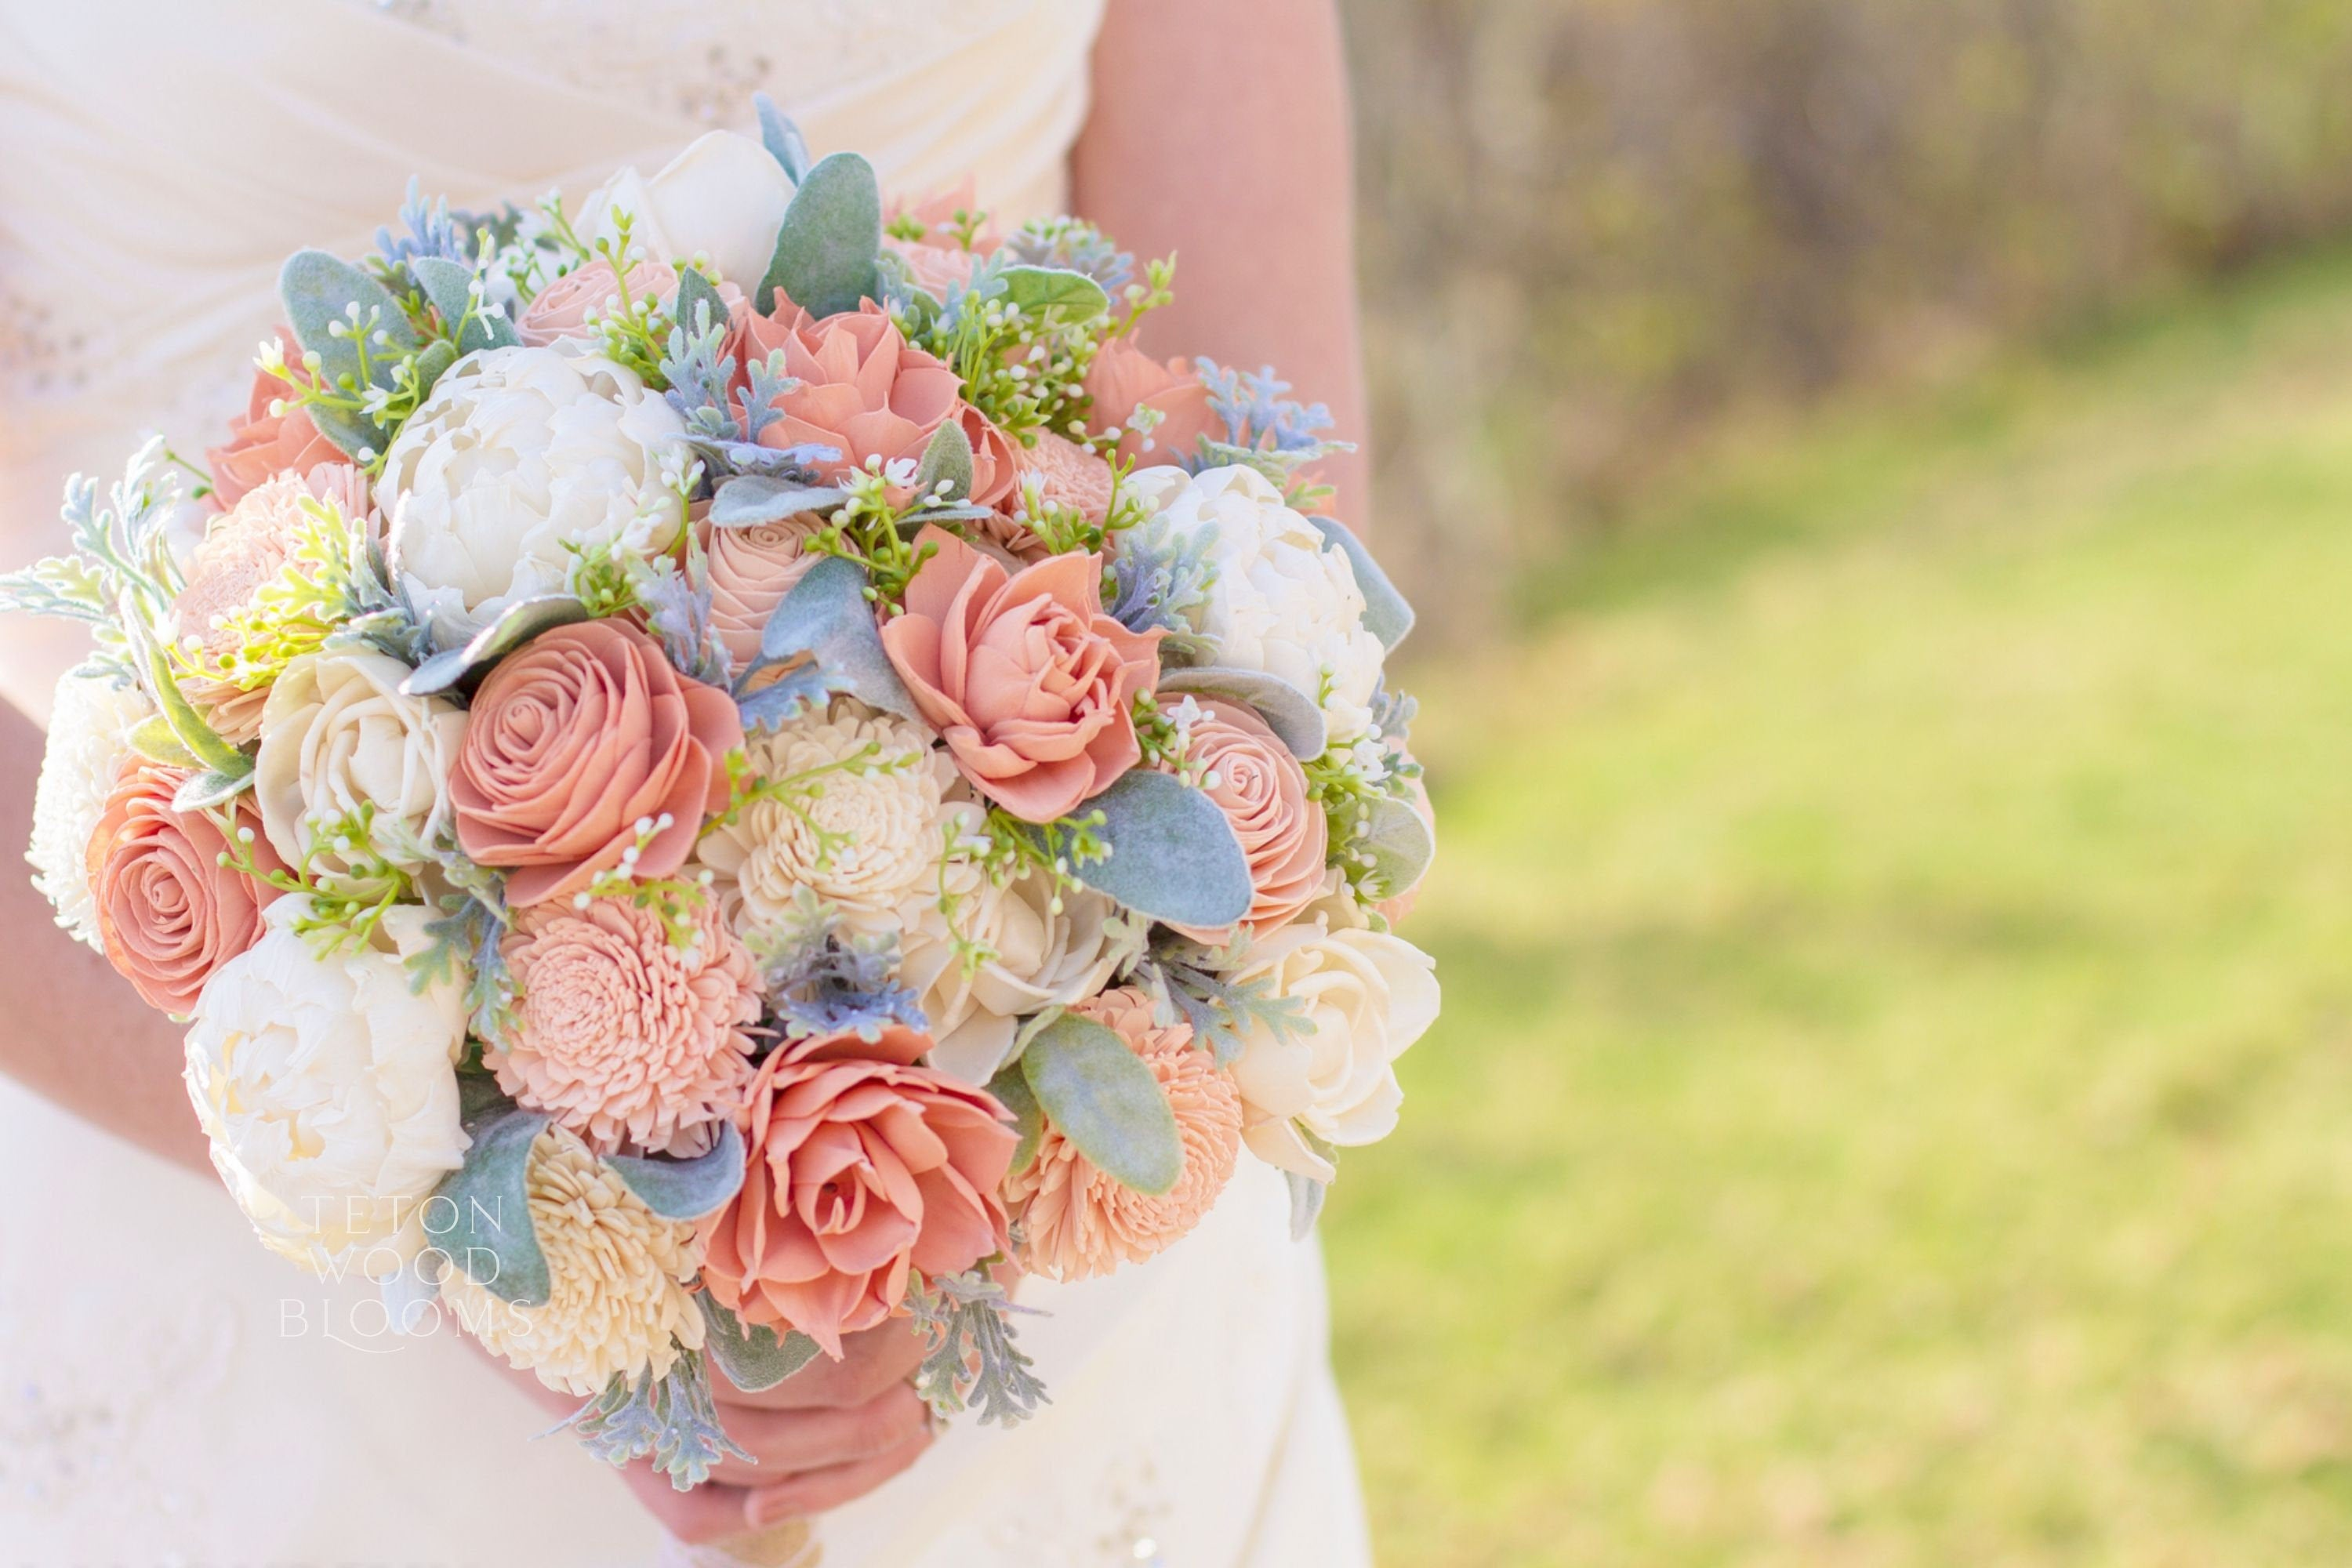 Blush, Ivory and Peony Bouquet